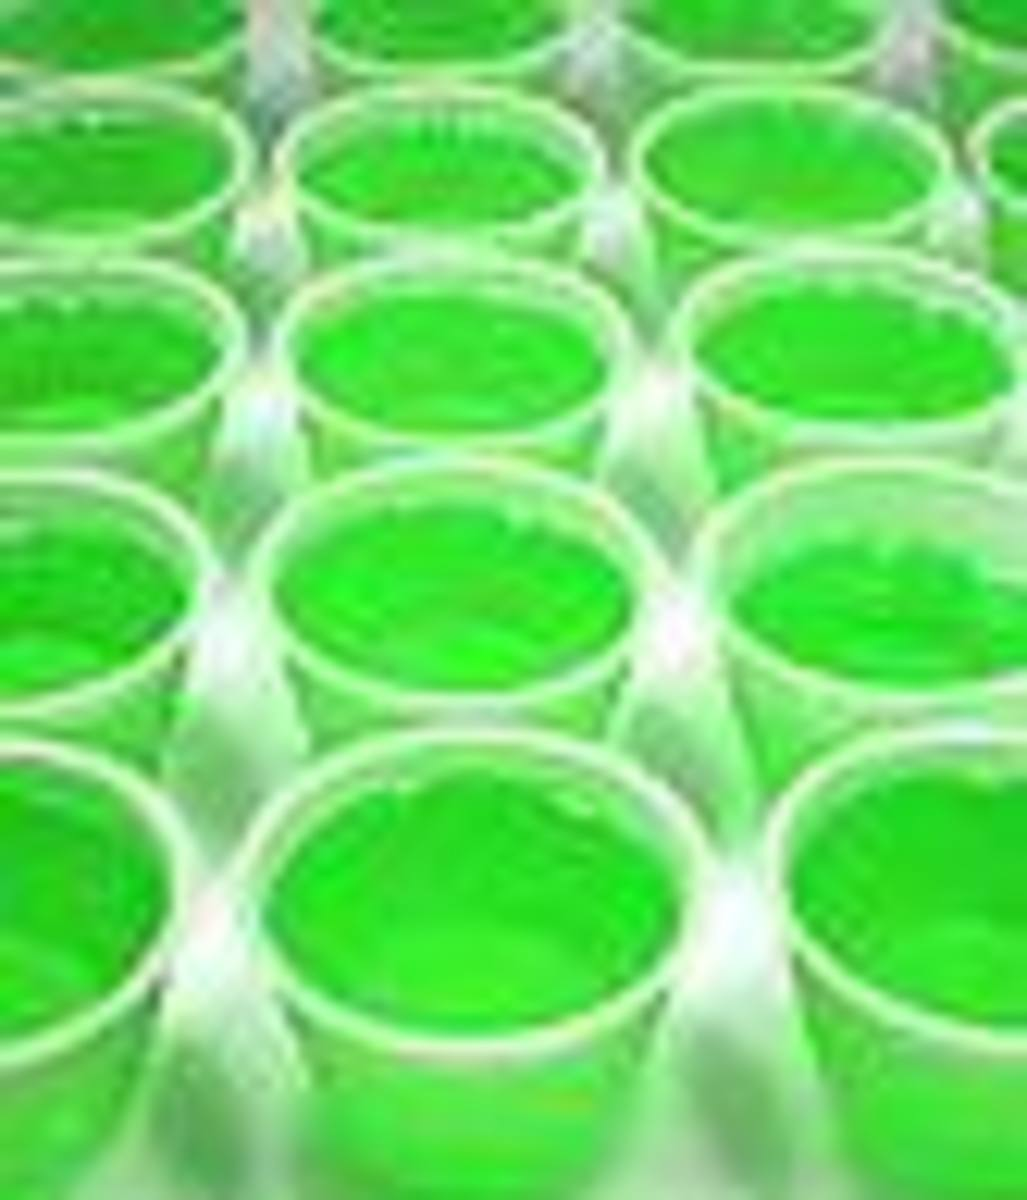 How To Make St. Patty's Day Jello Shots